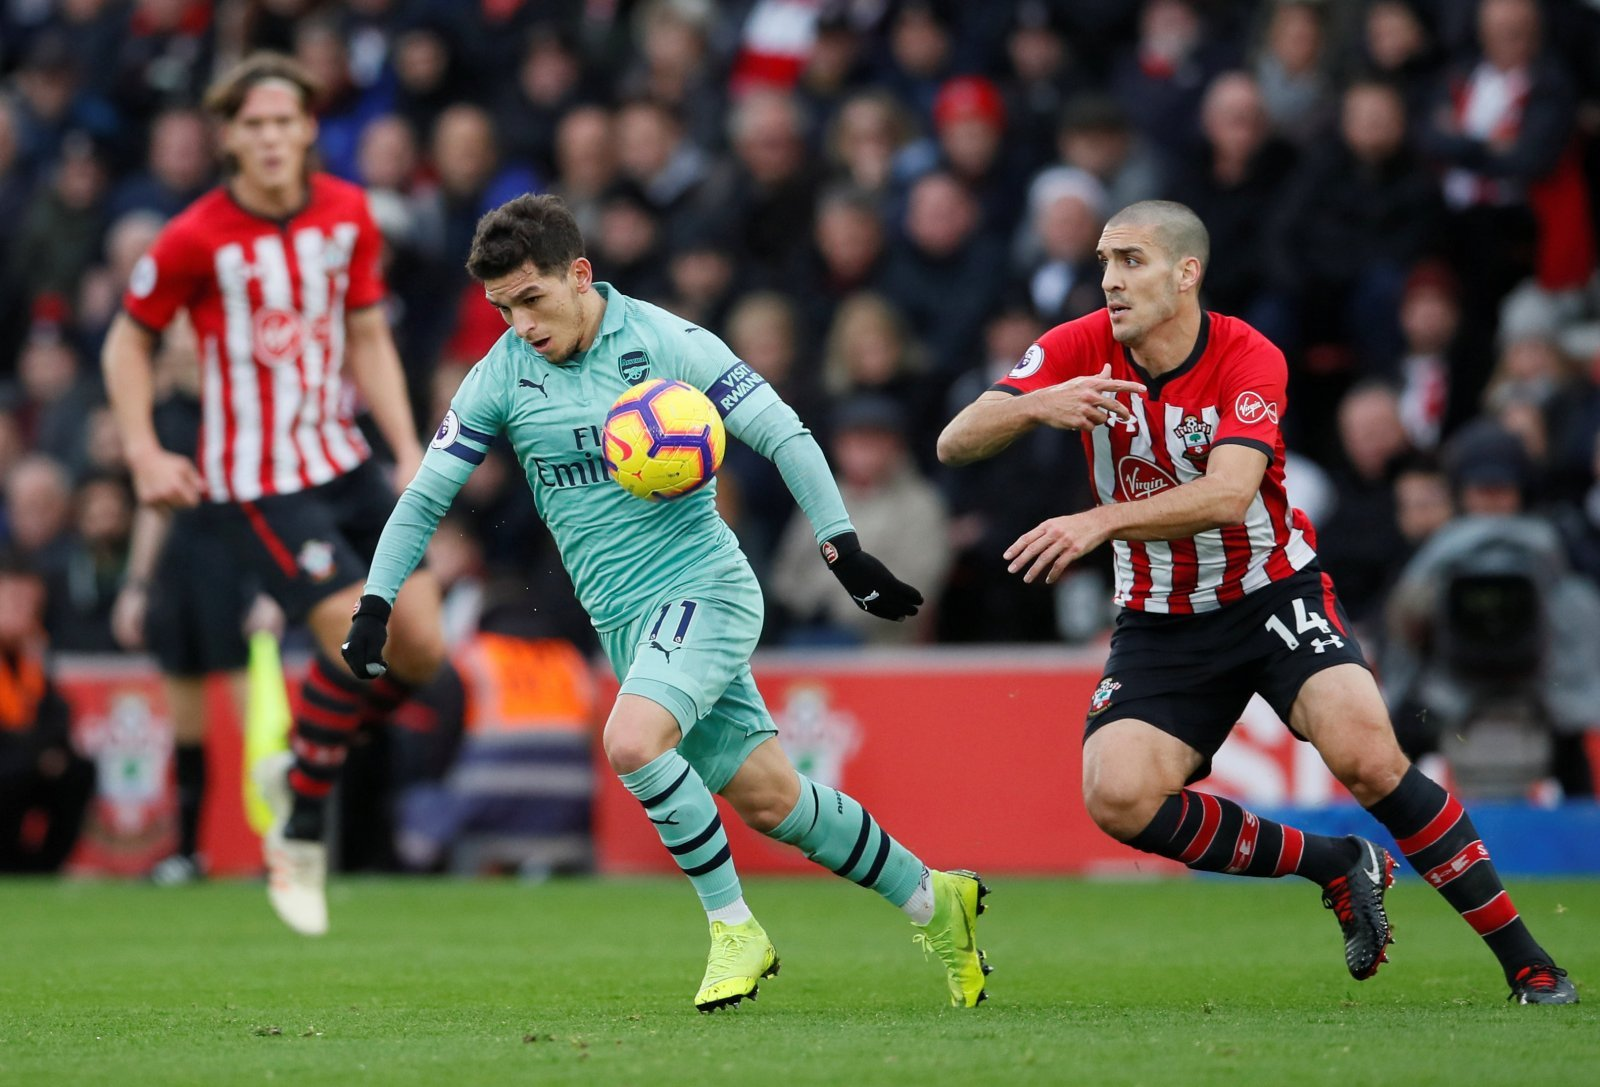 Arsenal fans take to Twitter to fume at Torreira's dismissal